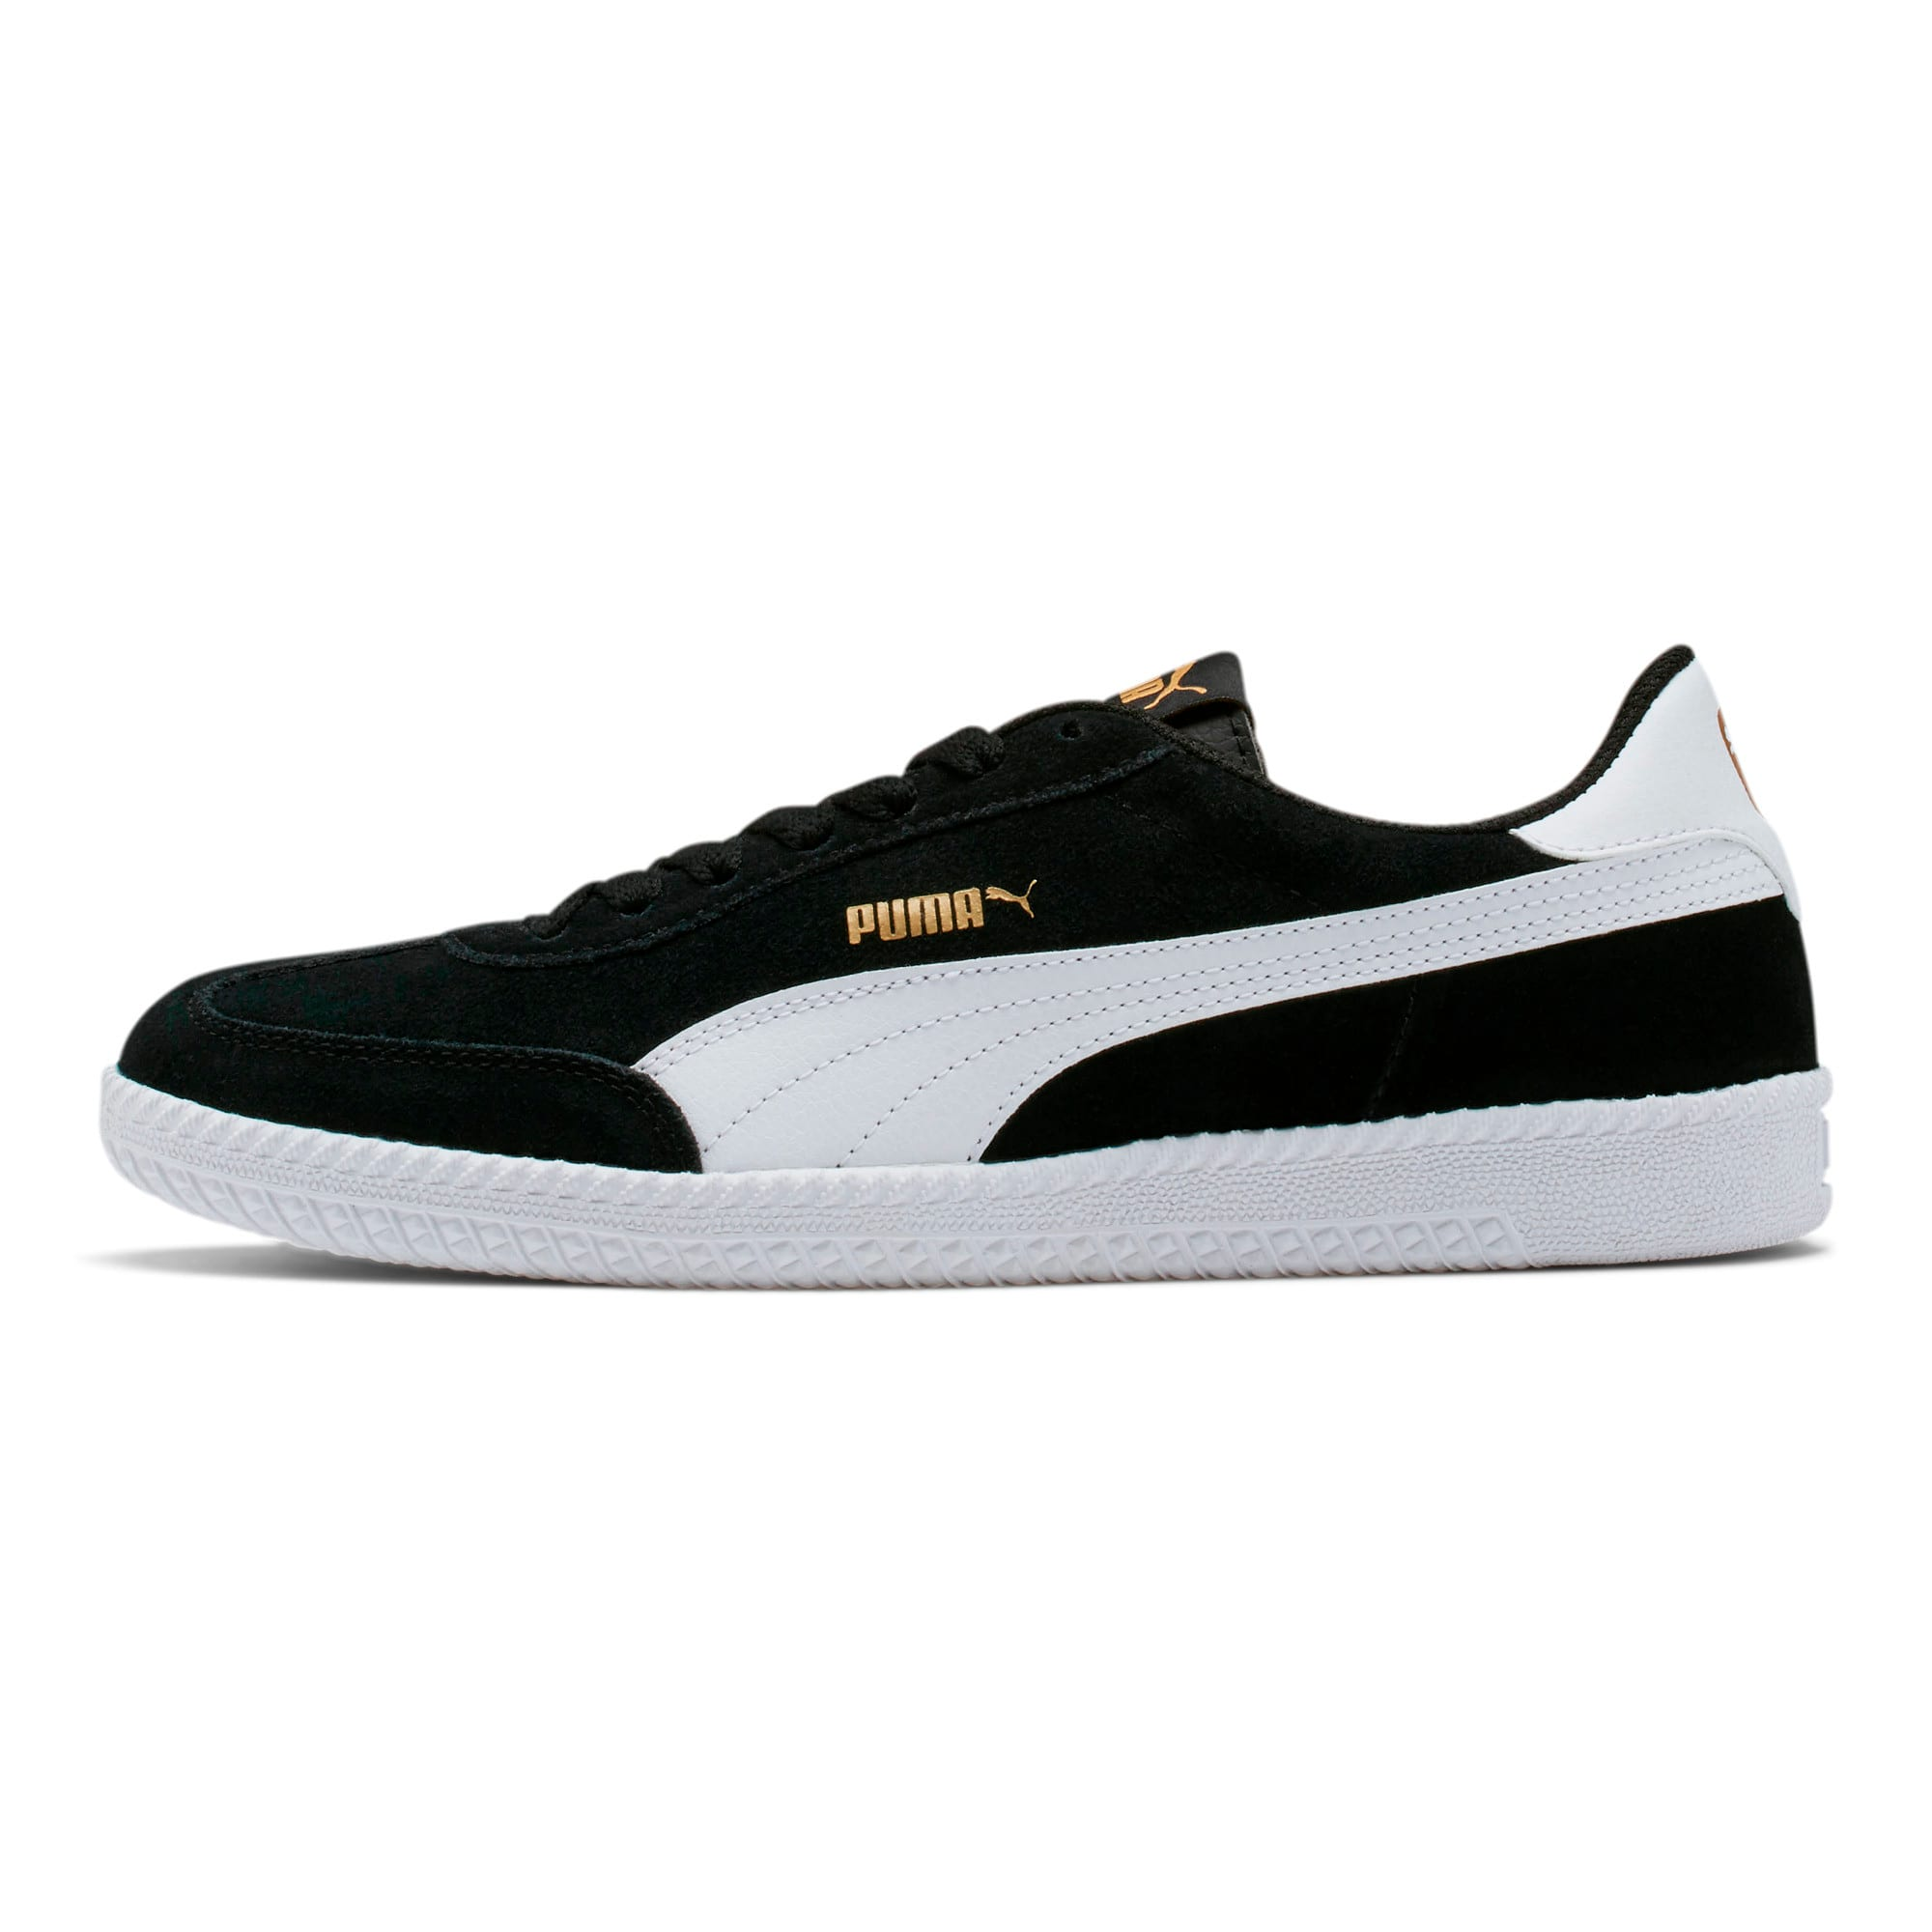 Astro Cup Suede Sneakers, Puma Black-Puma White, large